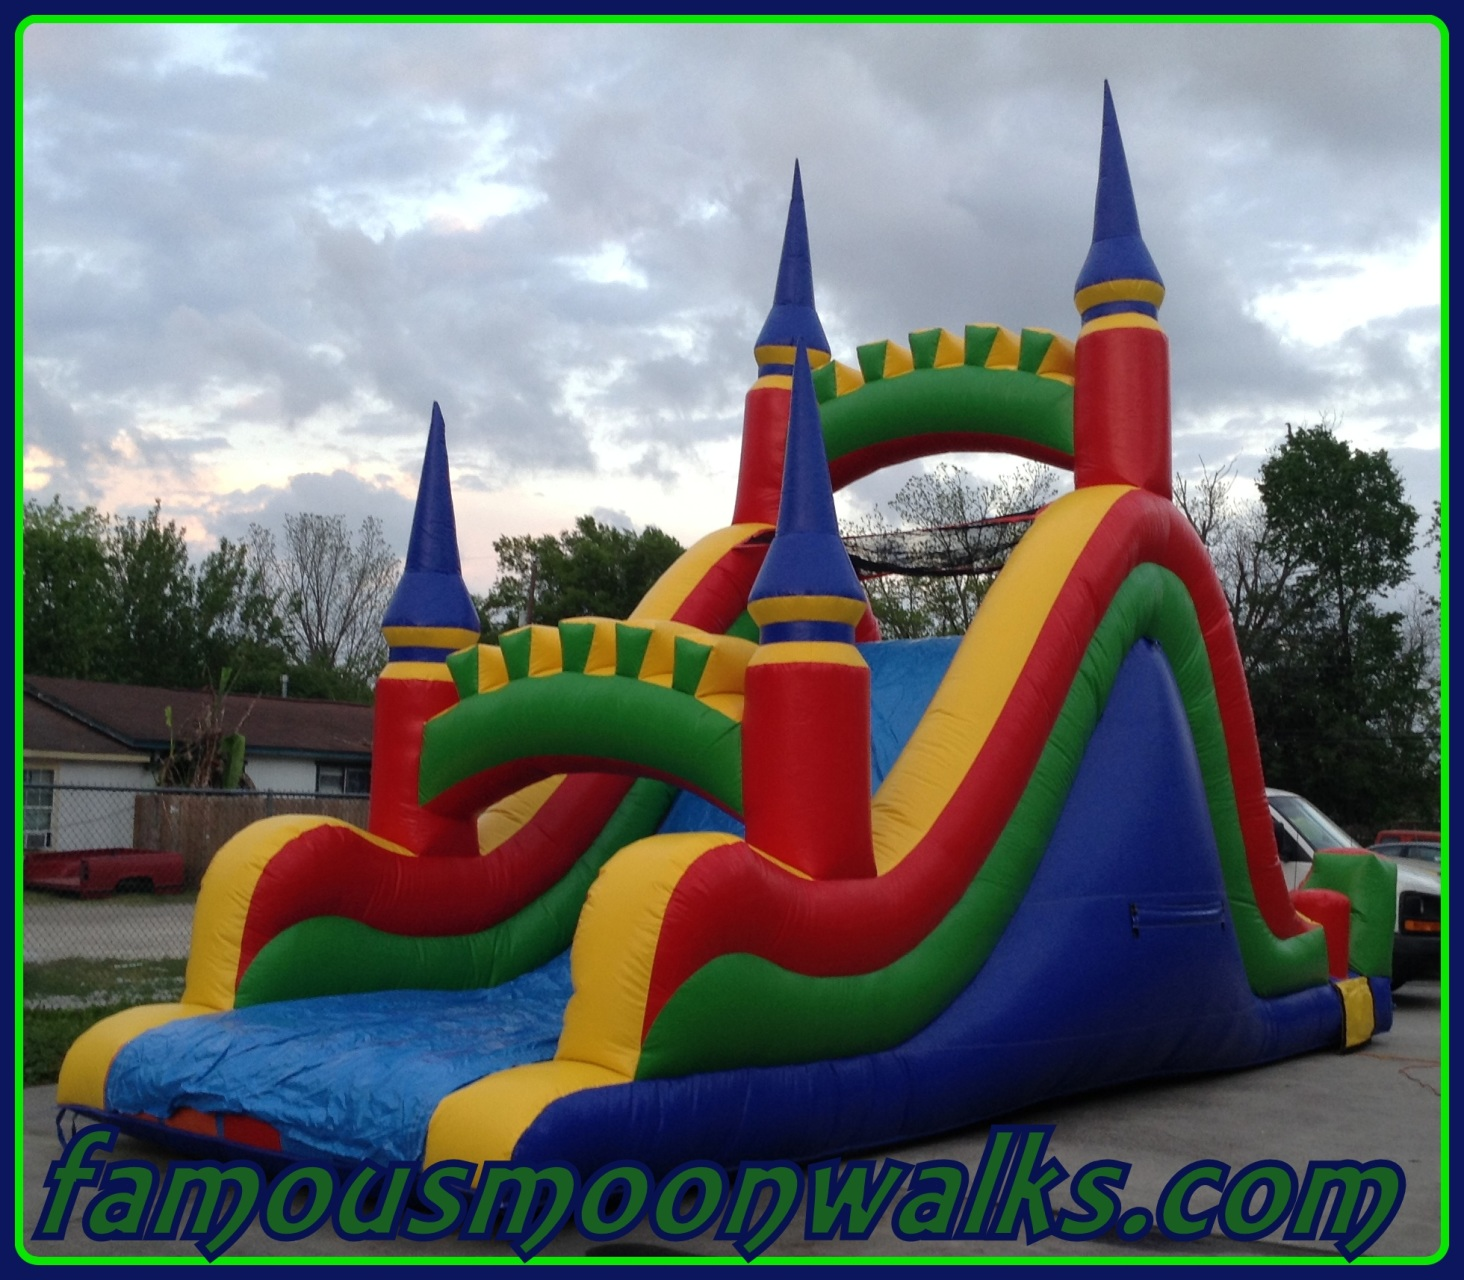 Inflatable Water Slide To Rent: Inflatable Dry Slide Rentals Houston